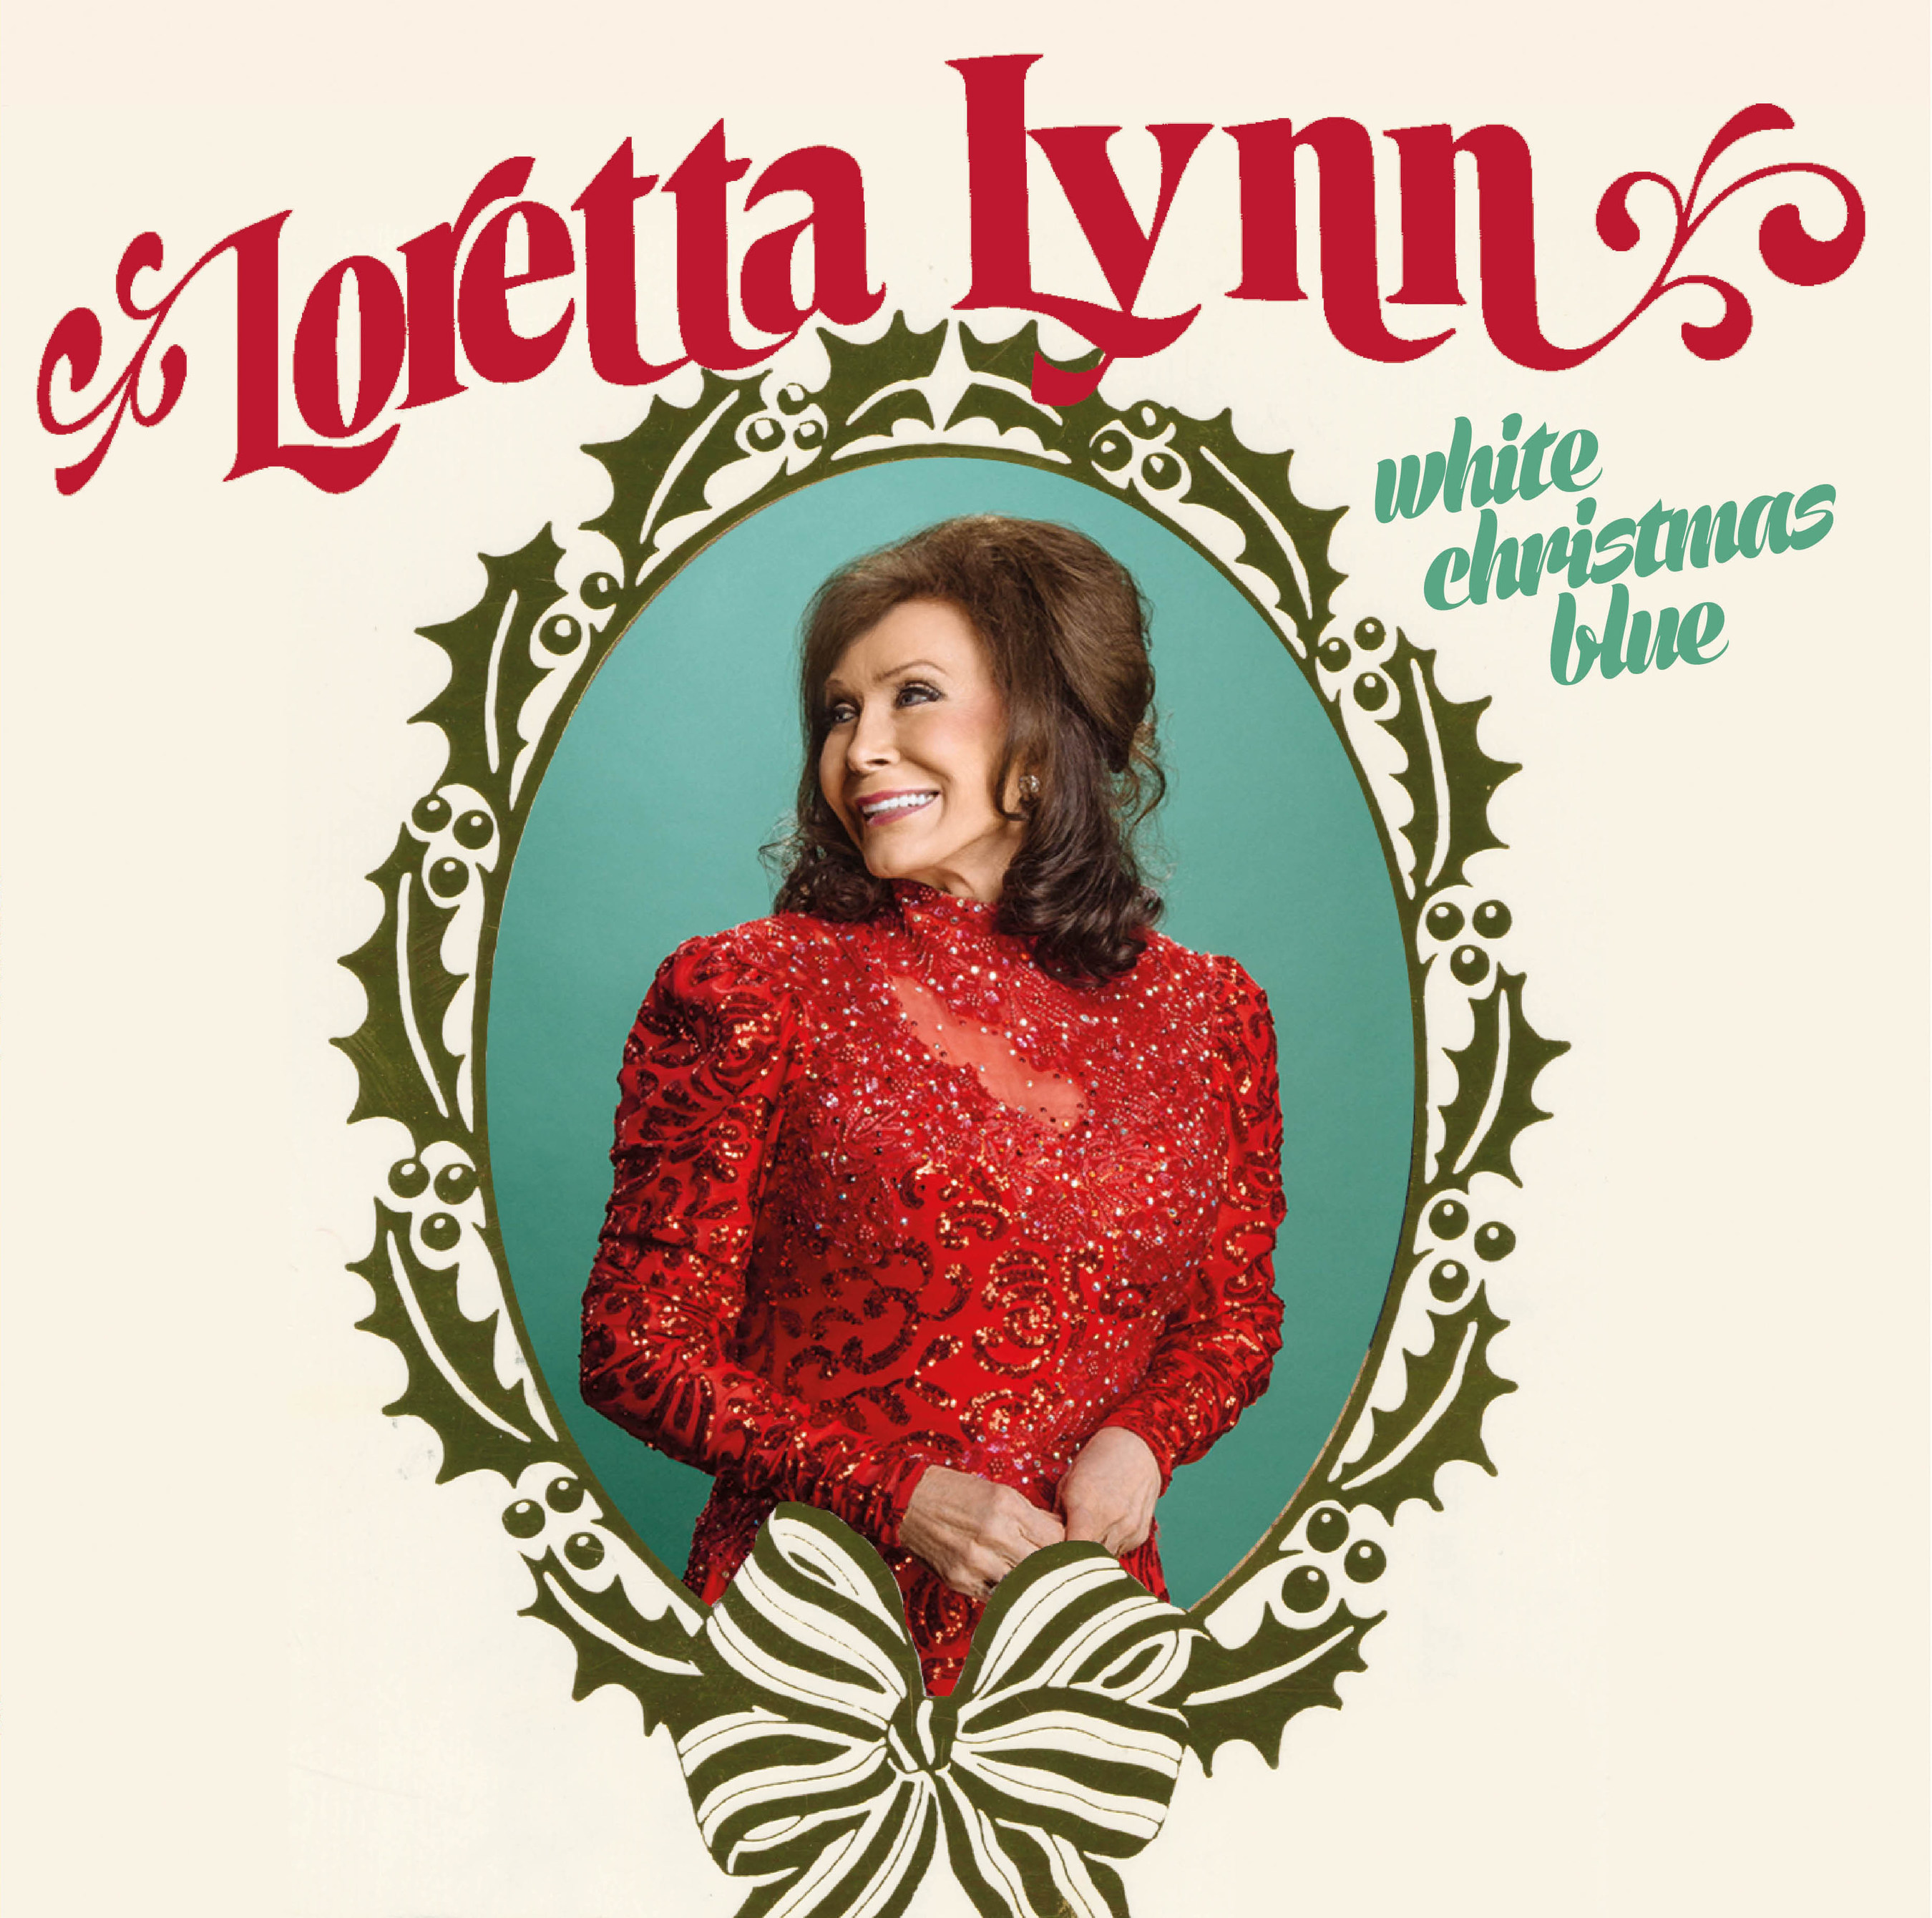 Loretta Lynn's New Holiday Album, White Christmas Blue, Coming Friday, October 7 on Legacy Recordings